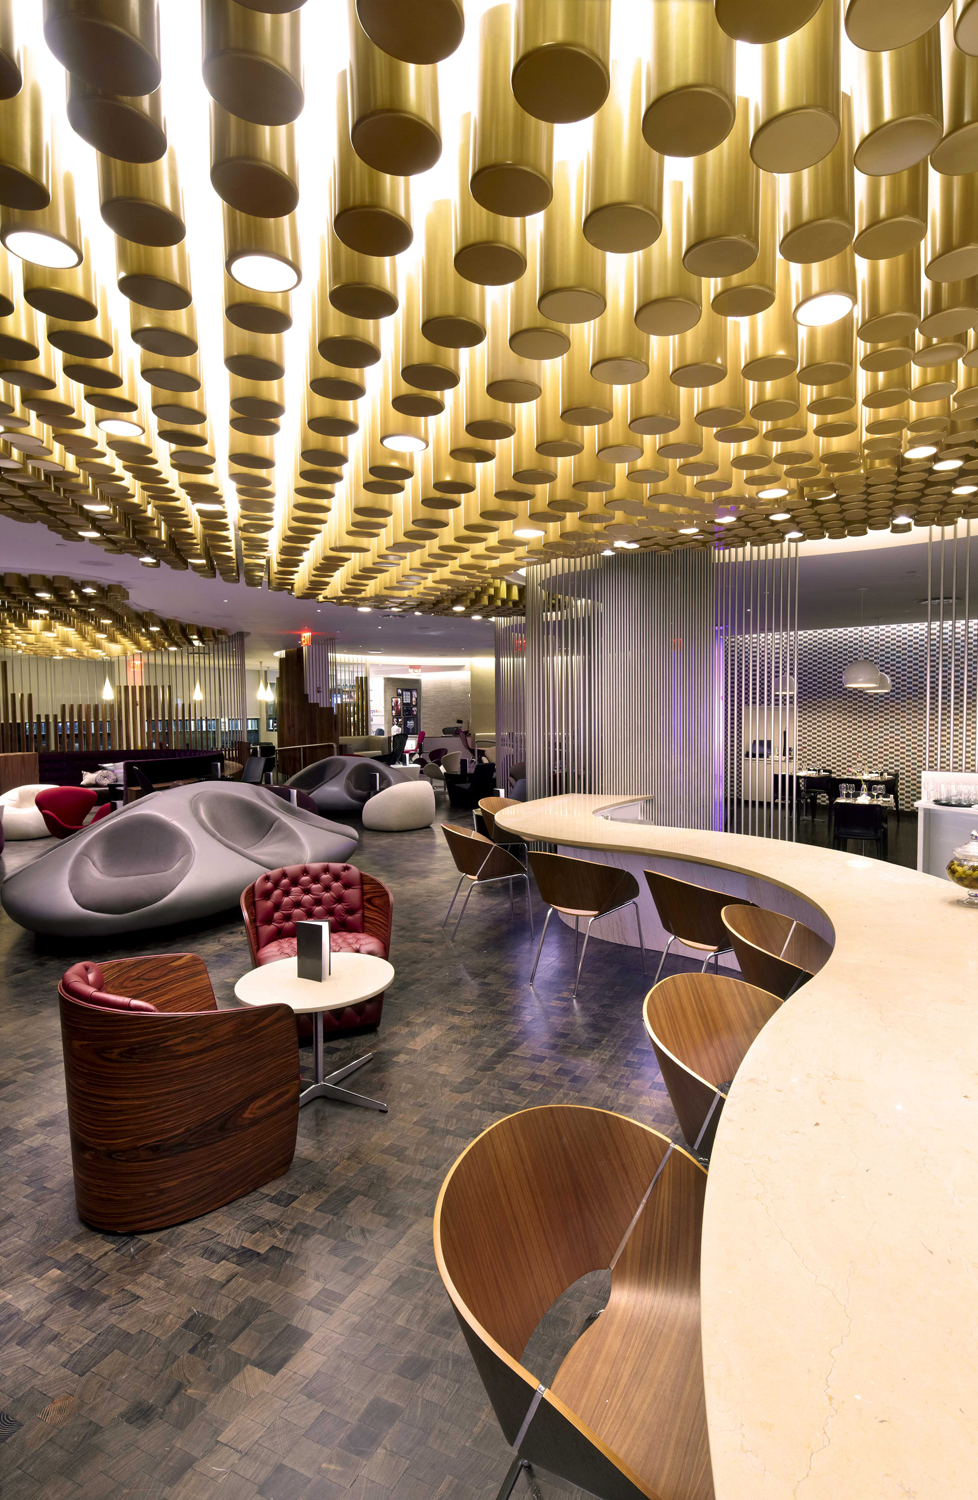 Virgin Atlantic JFK Clubhouse SLADE ARCHITECTURE